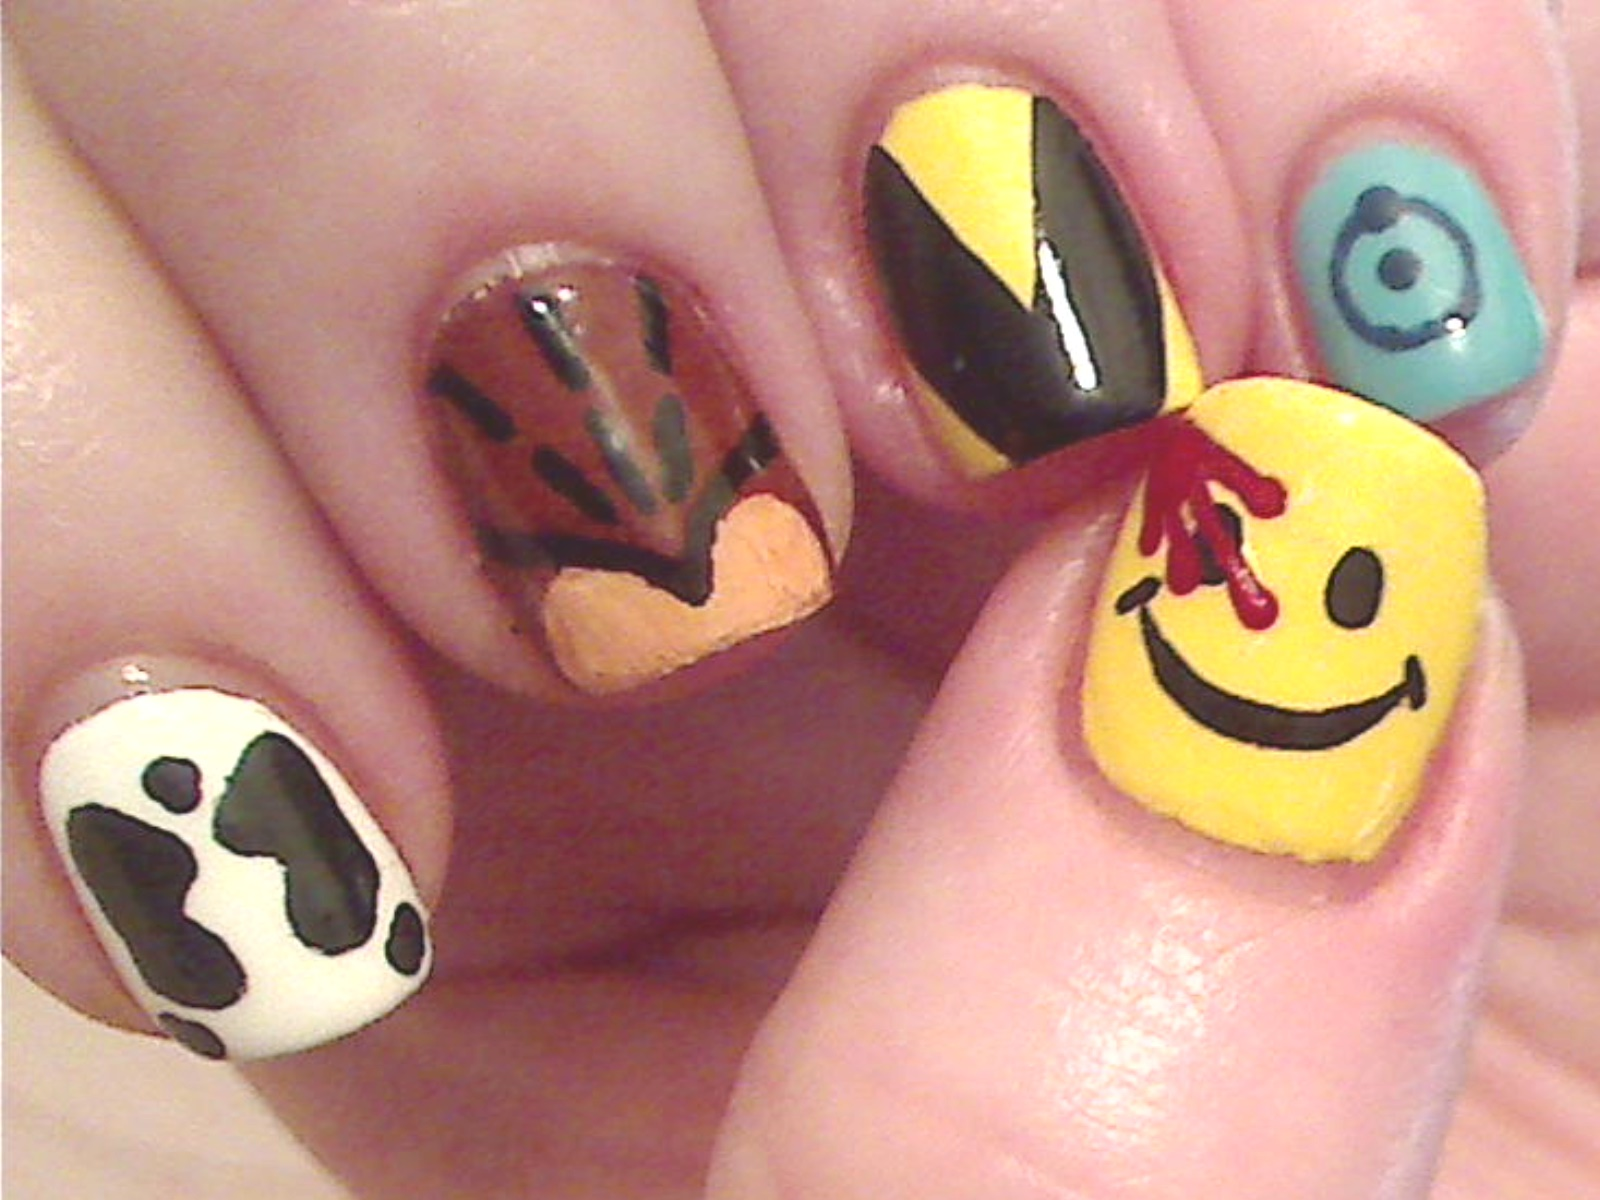 Nerdy Nail Art - The GCE